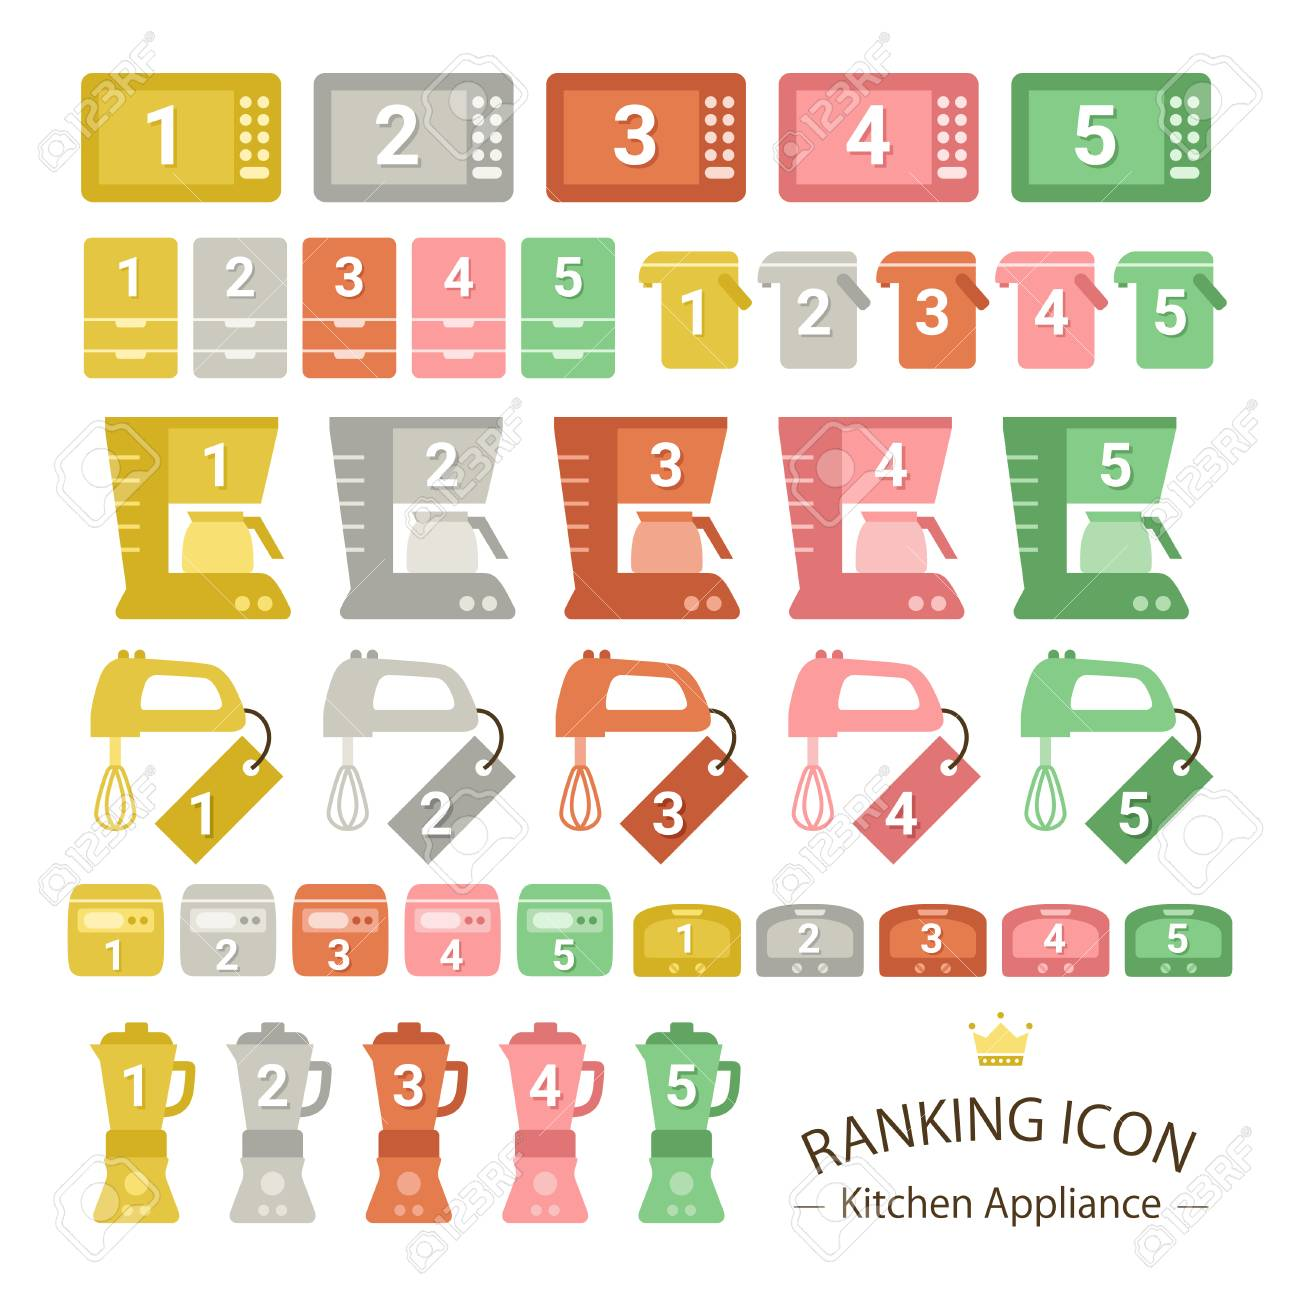 Kitchen Appliance Ranking Icon Sets Royalty Free Cliparts, Vectors ...